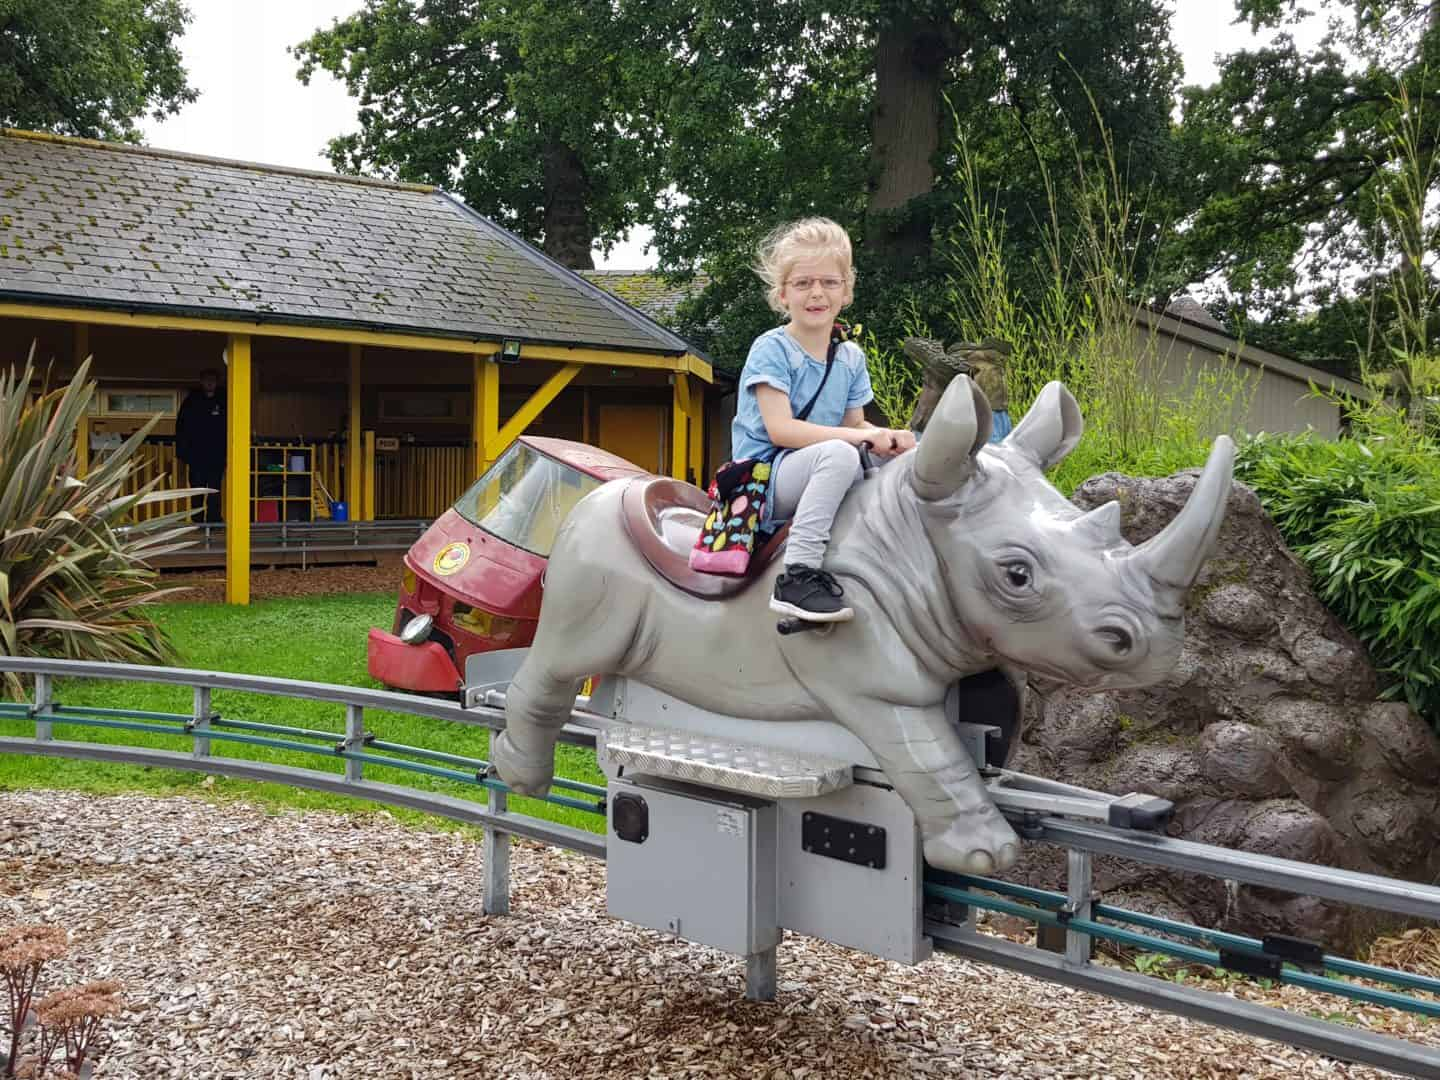 Girl on rockin' rhino ride at Longleat Safari Park